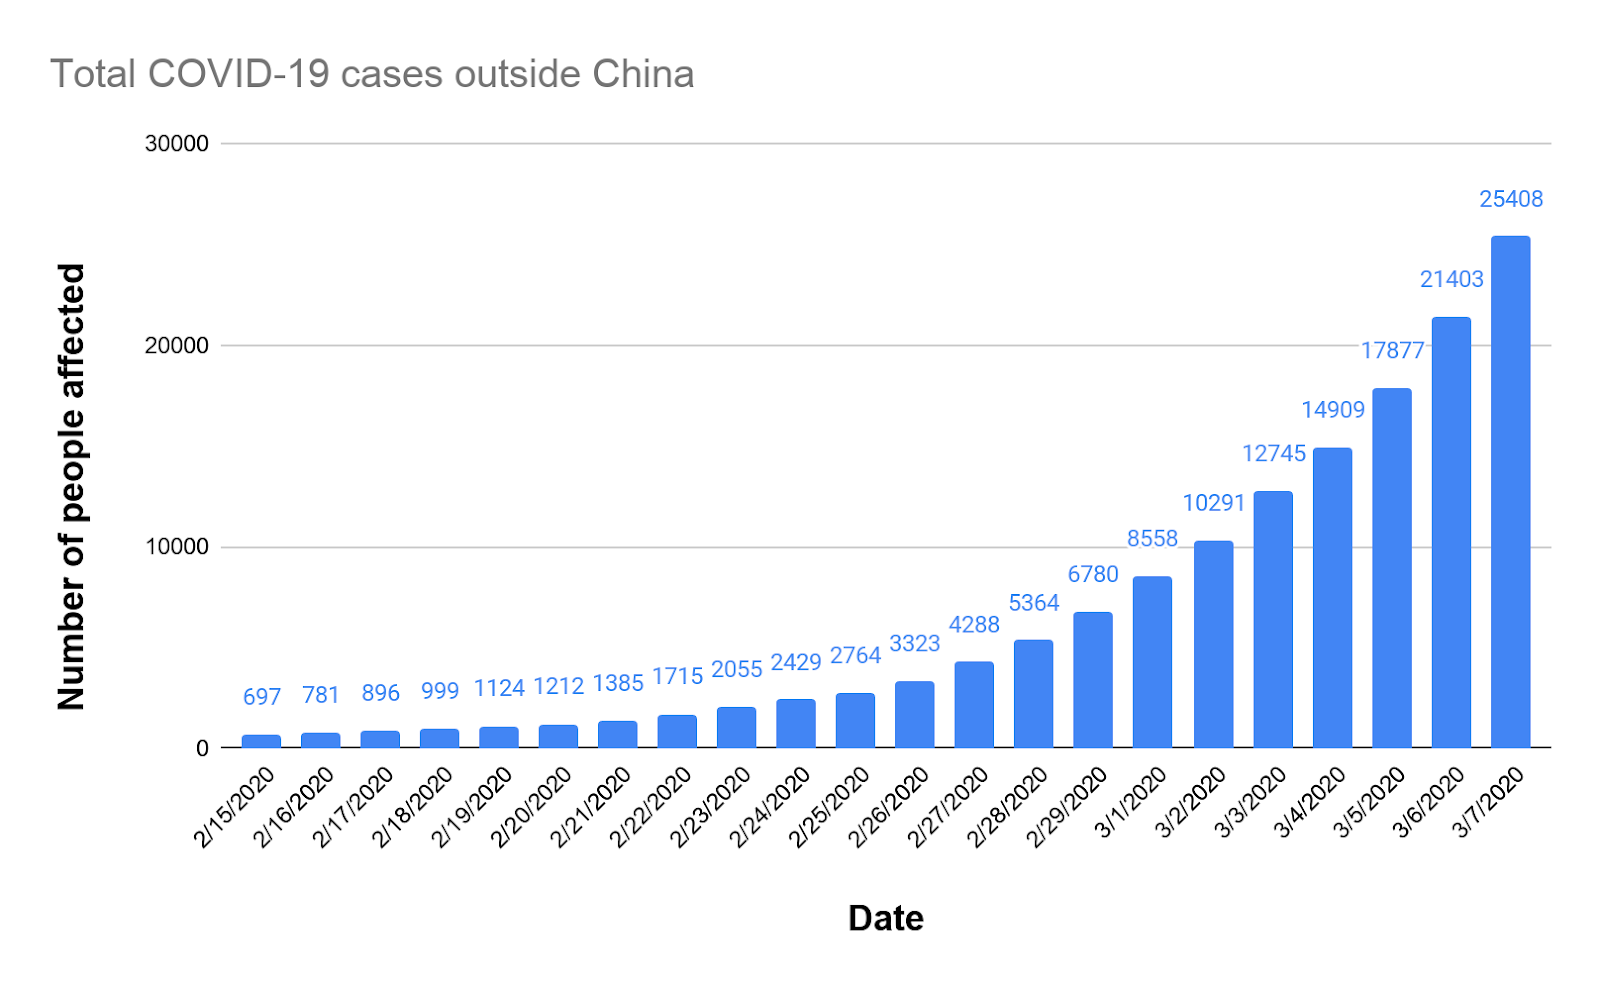 Graph showing total COVID-19 cases outside China between February 15, 2020 and March 7, 2020